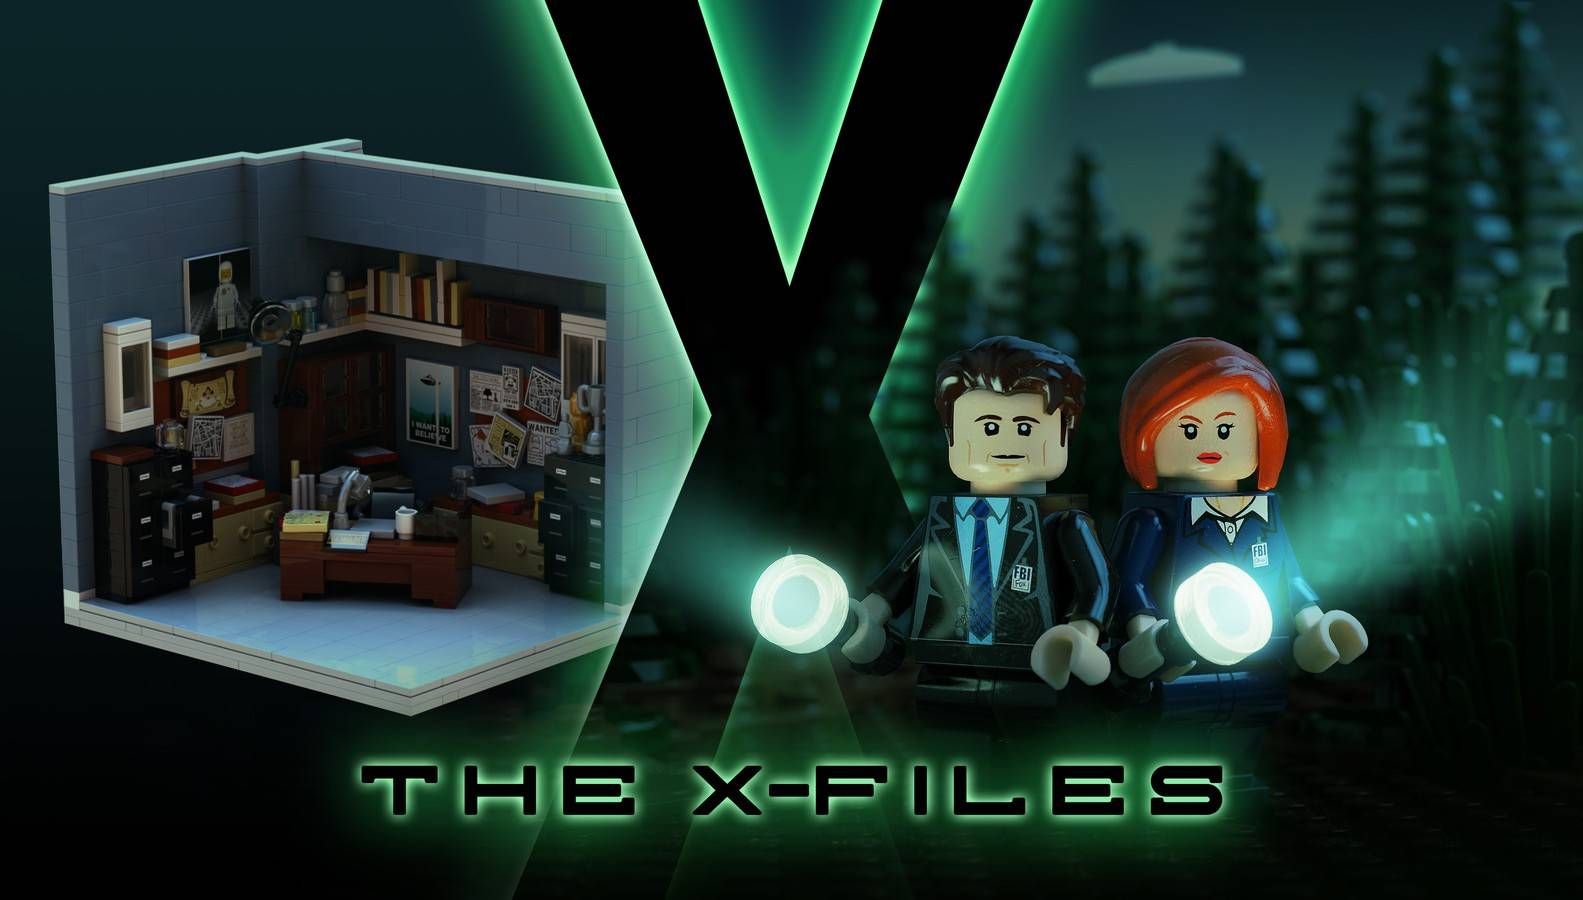 The x- files